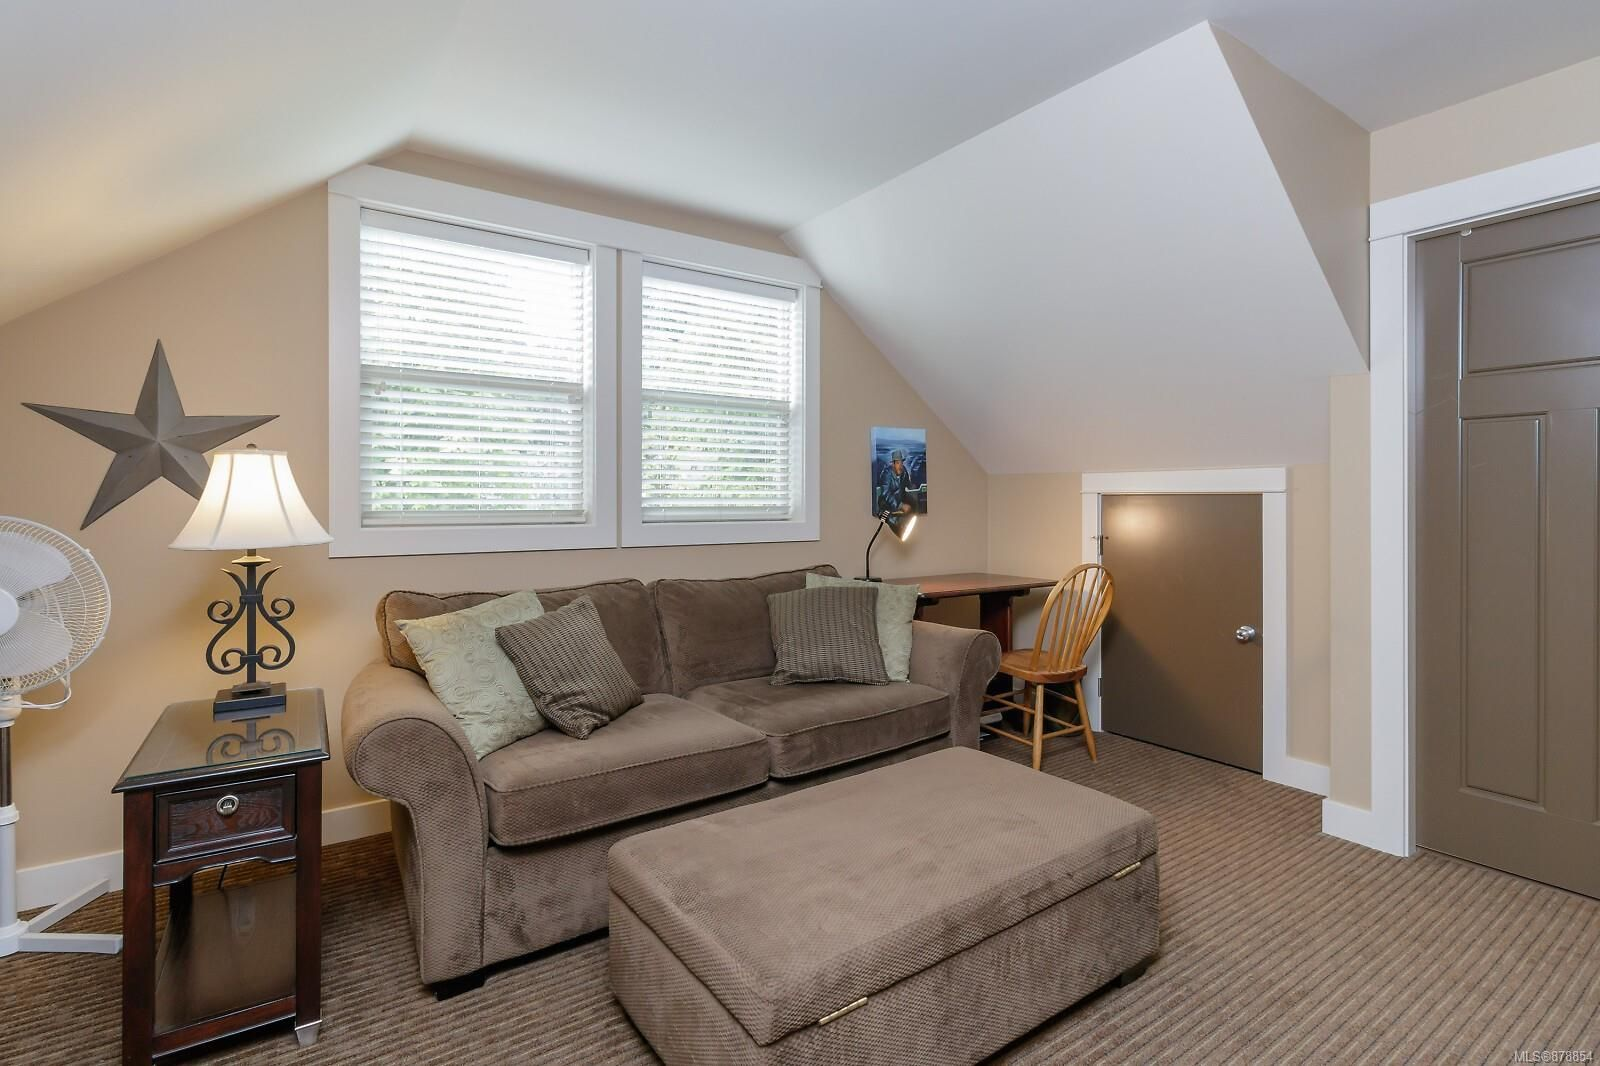 Photo 13: Photos: 223 1130 Resort Dr in : PQ Parksville Row/Townhouse for sale (Parksville/Qualicum)  : MLS®# 878854